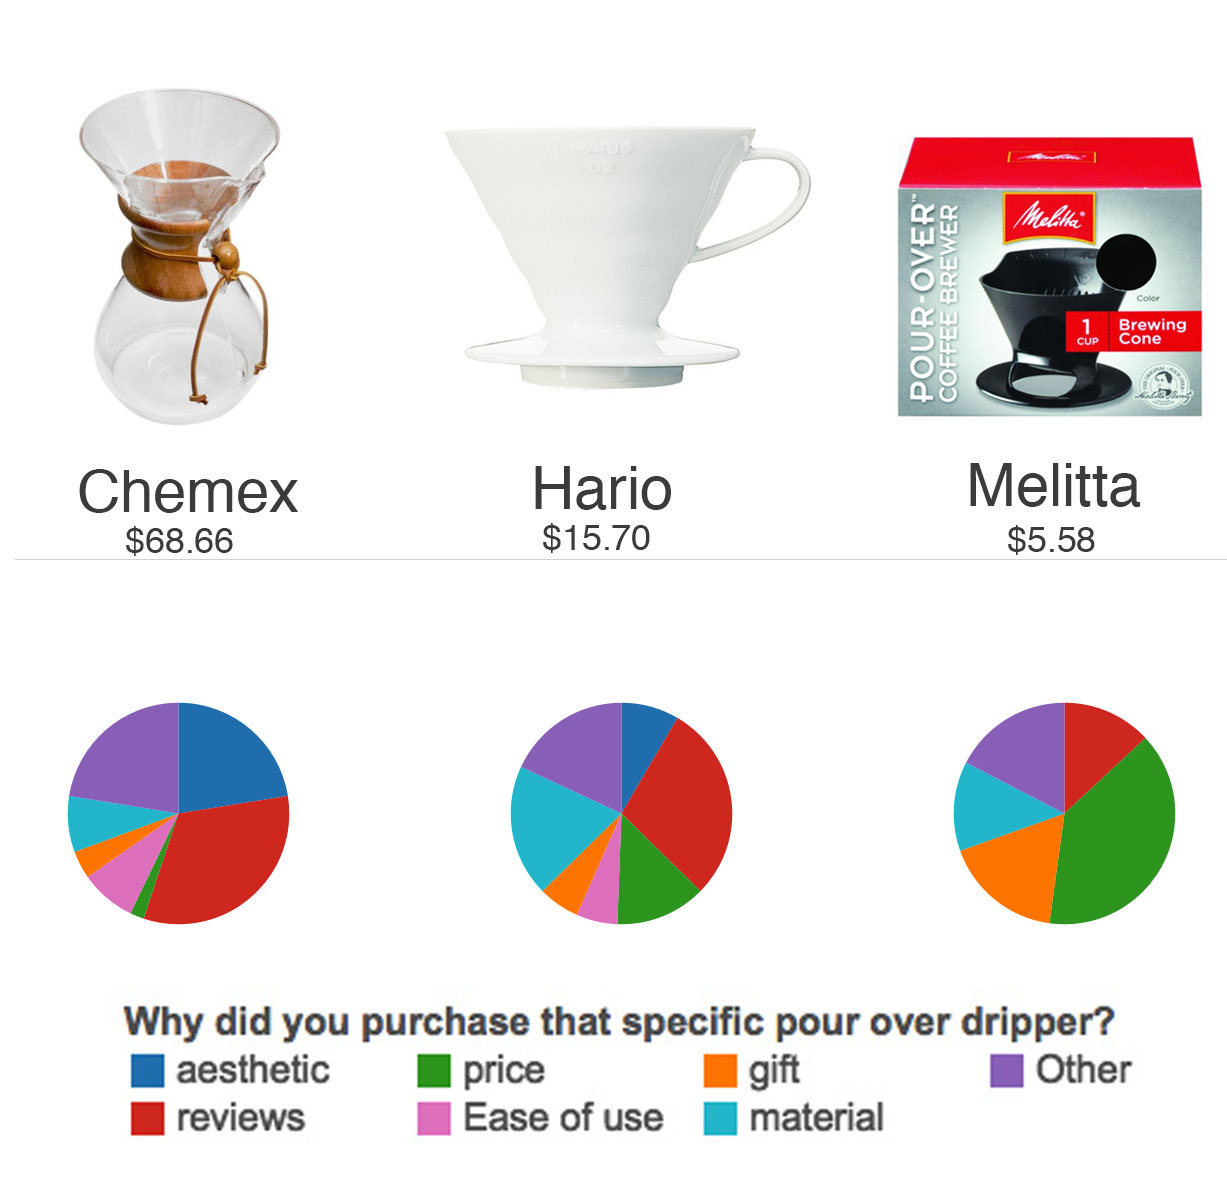 Pie charts of why customers bought certain pour over drippers. Chemex for reviews and aesthetics, Hario v60 for Reviews, and Melitta for price